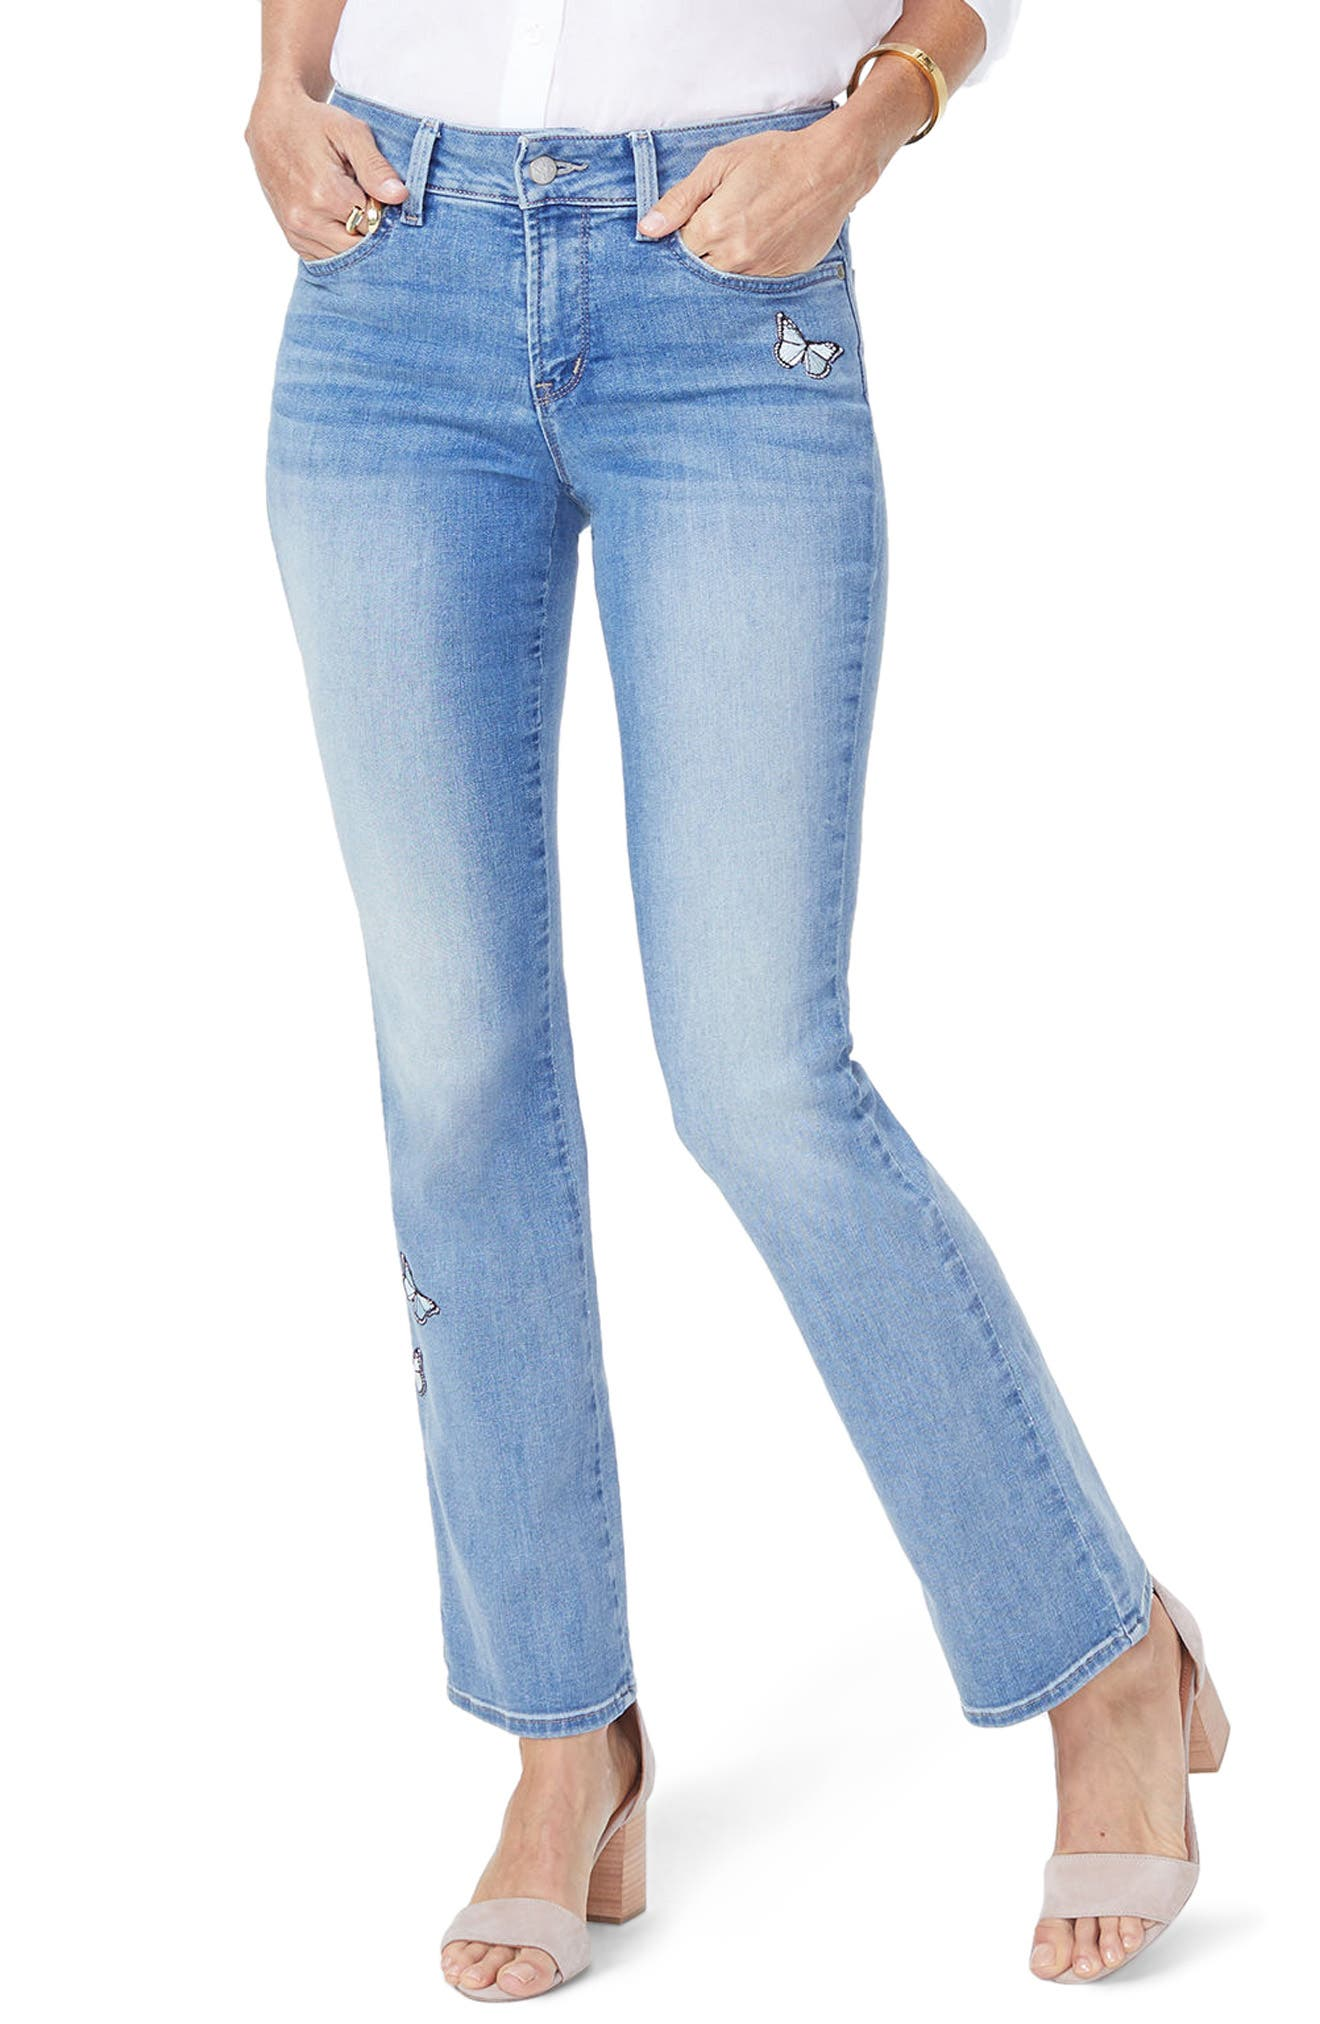 Barbara Butterfly Bootcut Jeans,                         Main,                         color, 418